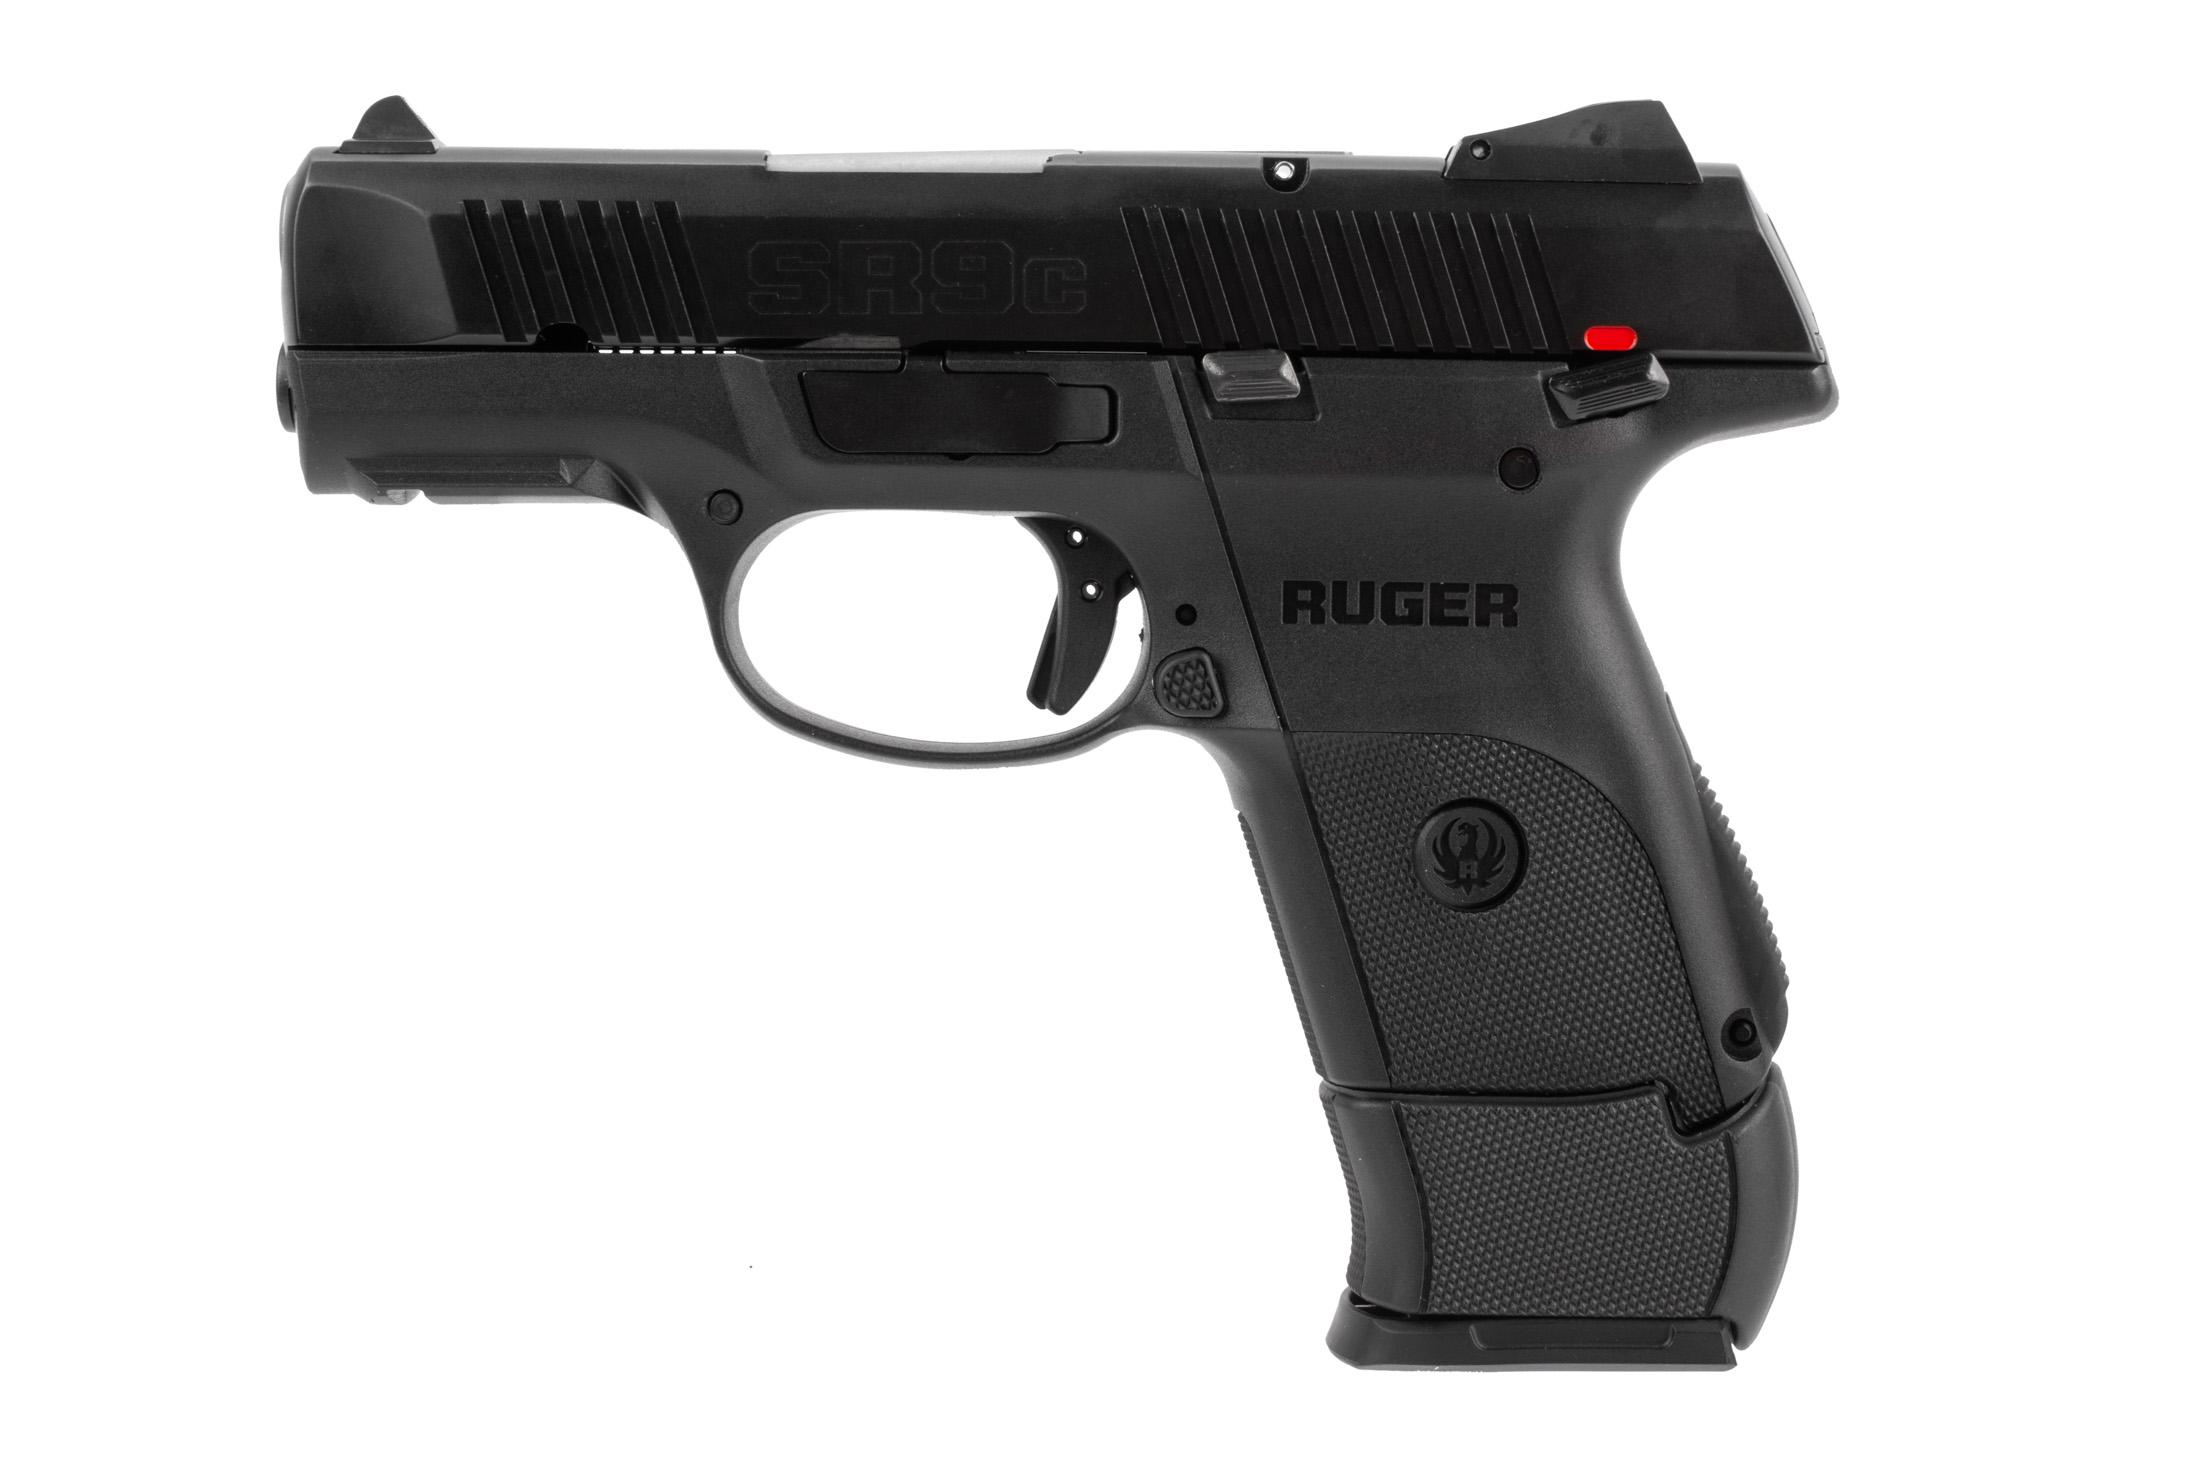 The Ruger SR9c has a cocked striker indicator